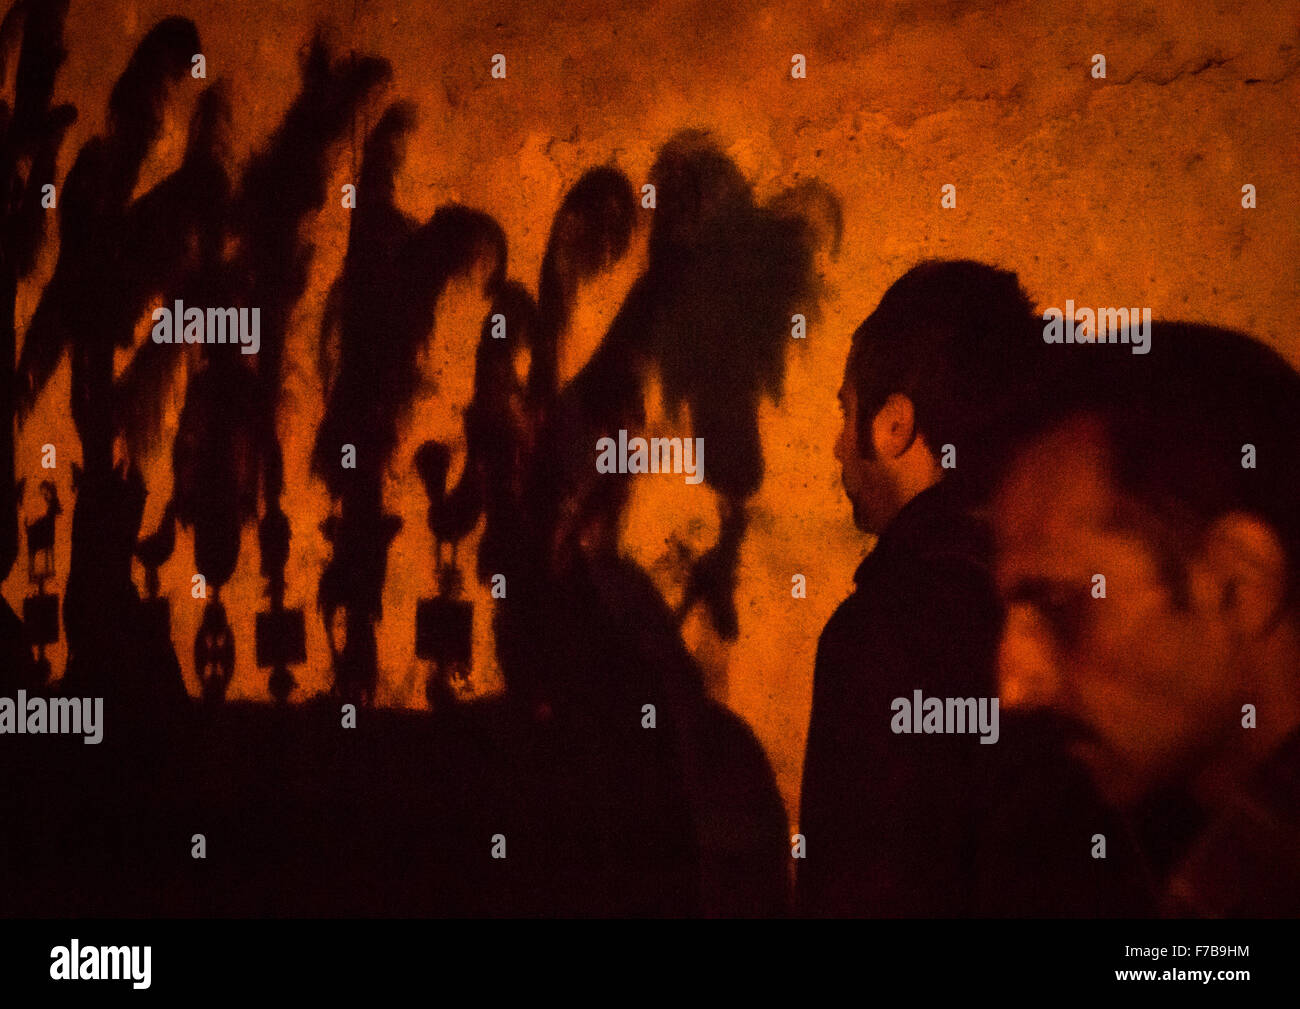 Shadow Of An Alam On A Wall On Ashura, The Day Of The Death Of Imam Hussein, Golestan Province, Gorgan, Iran - Stock Image